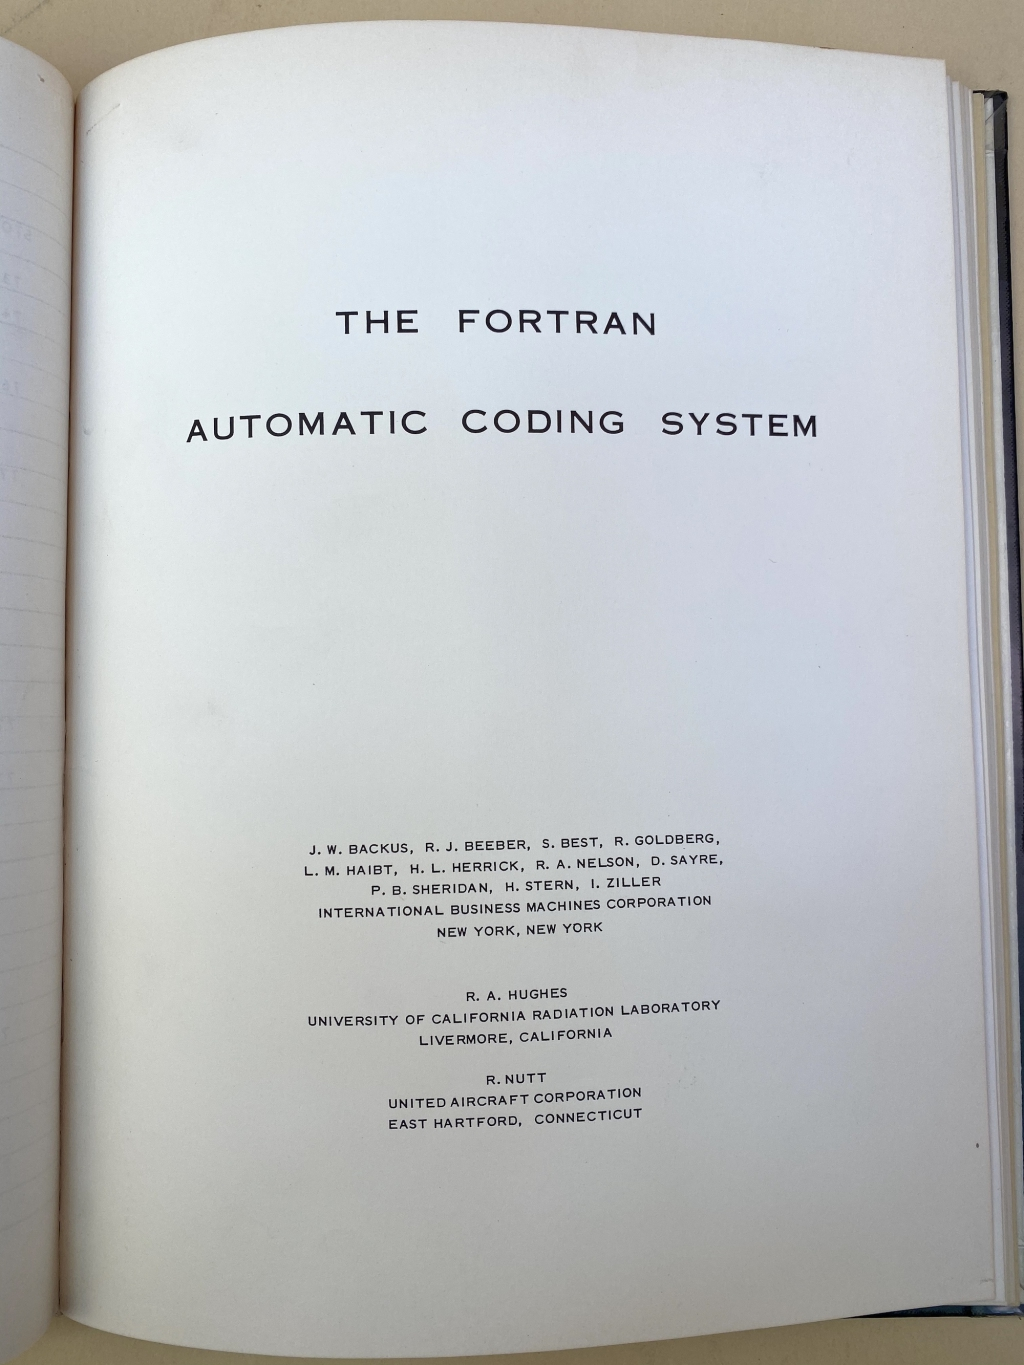 Title page for The Fortran Automatic Coding System preliminary version